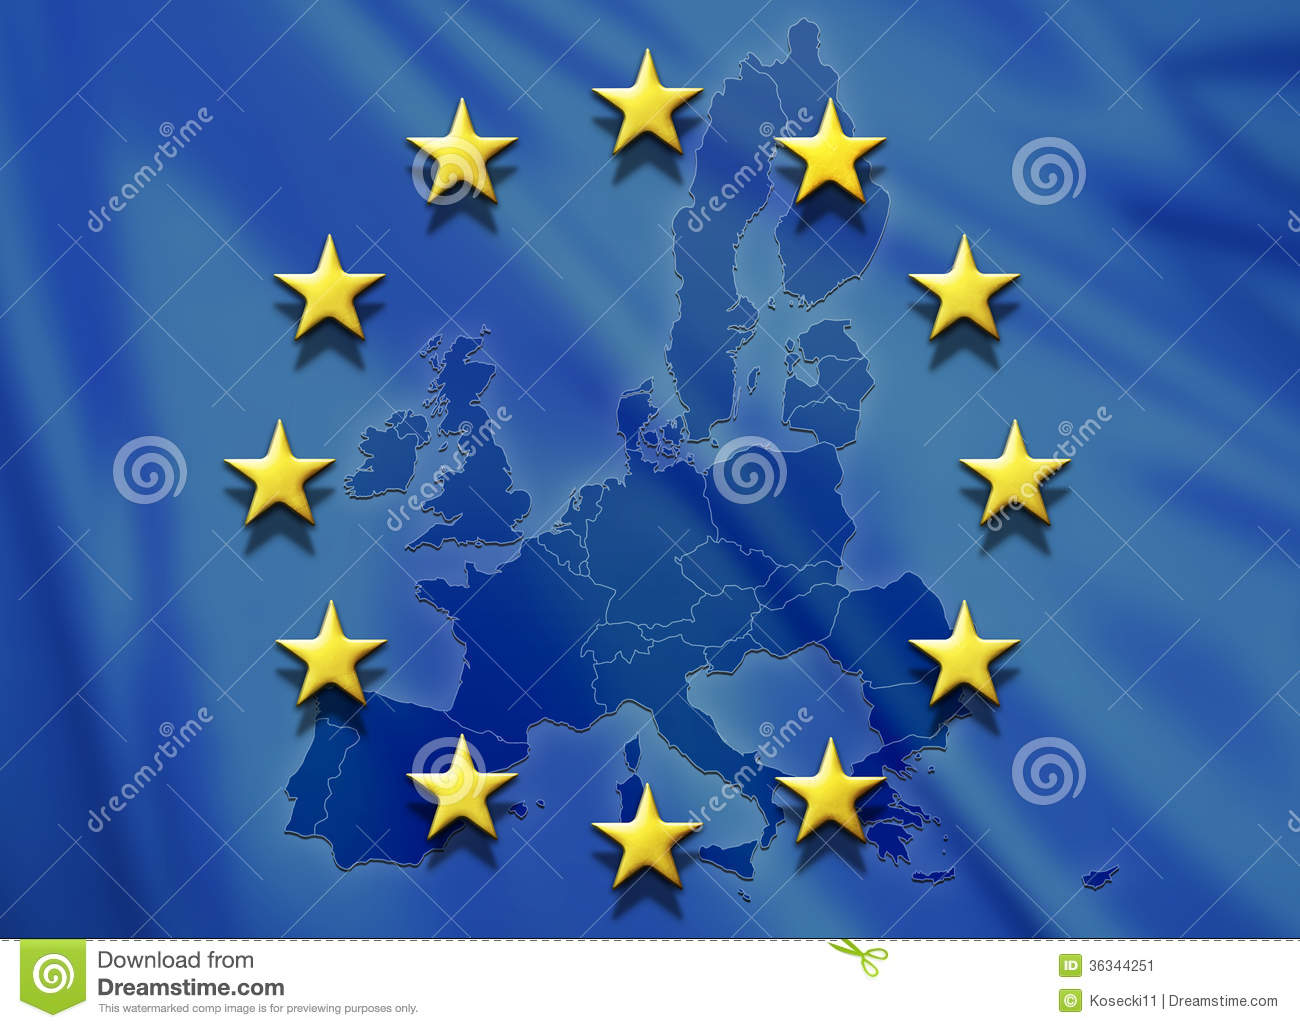 political map of europe with Stock Image Eu Flag European Union Map Image36344251 on A1 together with Lithuania as well Understanding The Bon s Rouges 1 further Geo Map Europe Denmark in addition Stock Image Eu Flag European Union Map Image36344251.